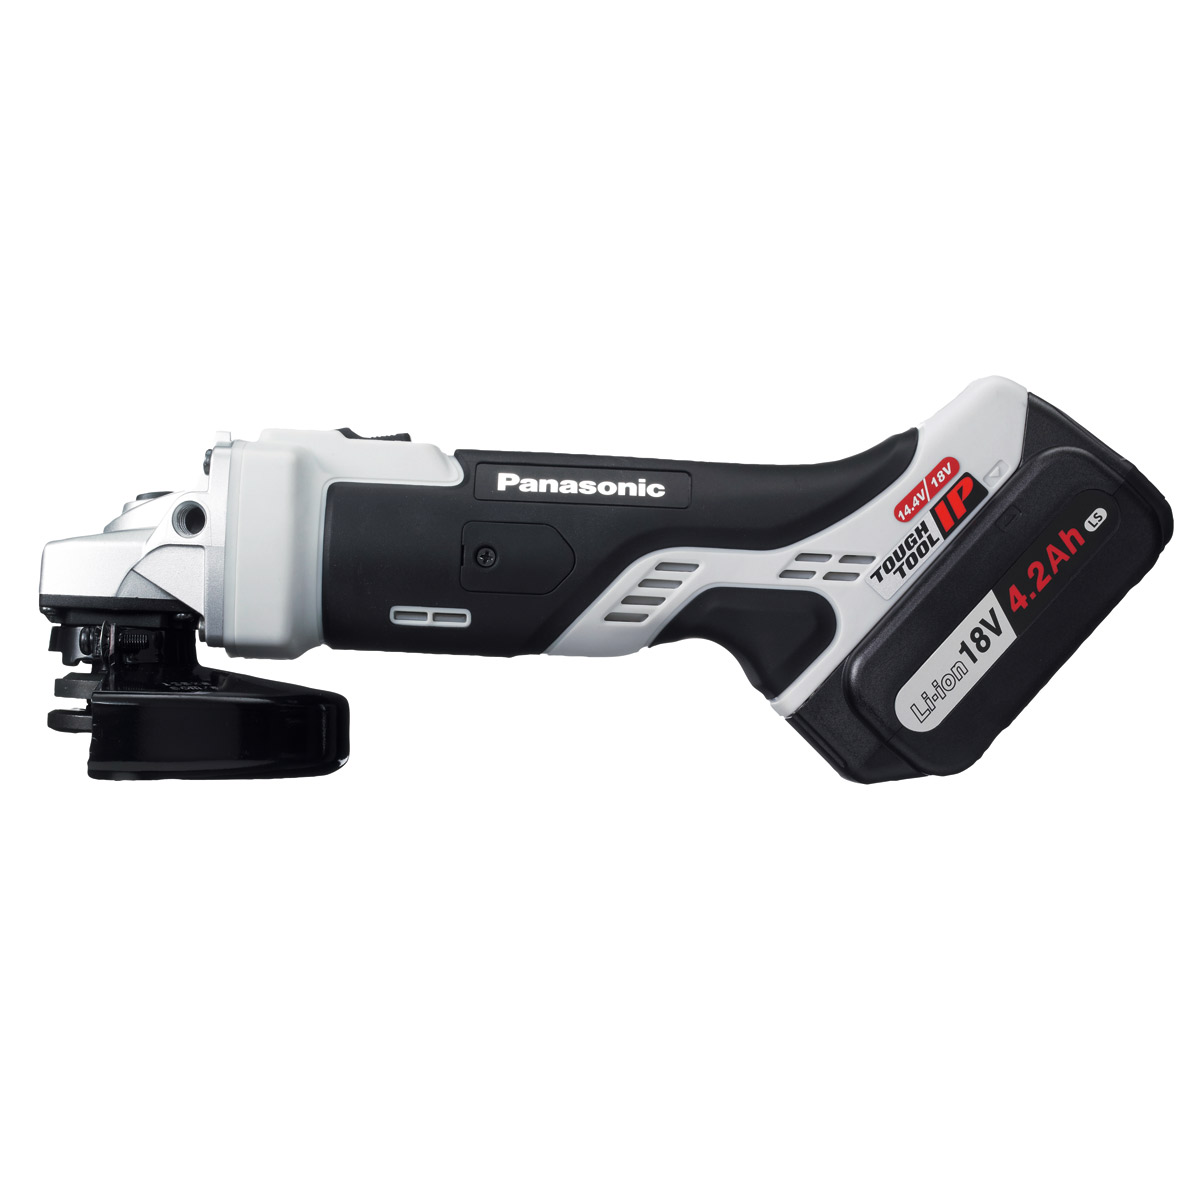 PANASONIC 18V DUAL VOLTAGE 125MM ANGLE GRINDER 2 X 18V 4.2AH LI-ION BATTERIES